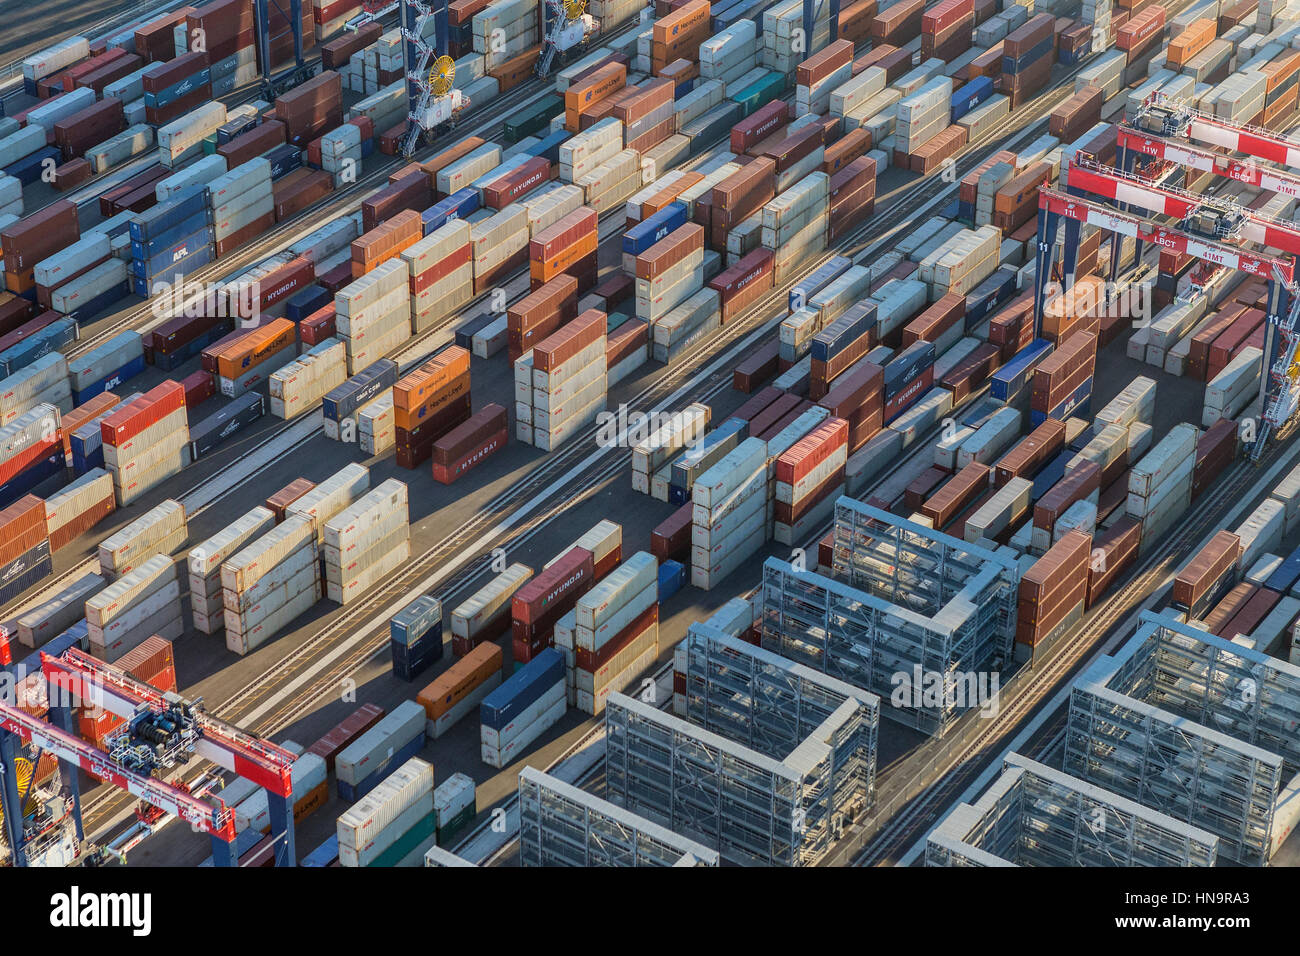 Los Angeles, California, USA - August 16, 2016:  Afternoon aerial view of cargo shipping containers stacked on docks. - Stock Image